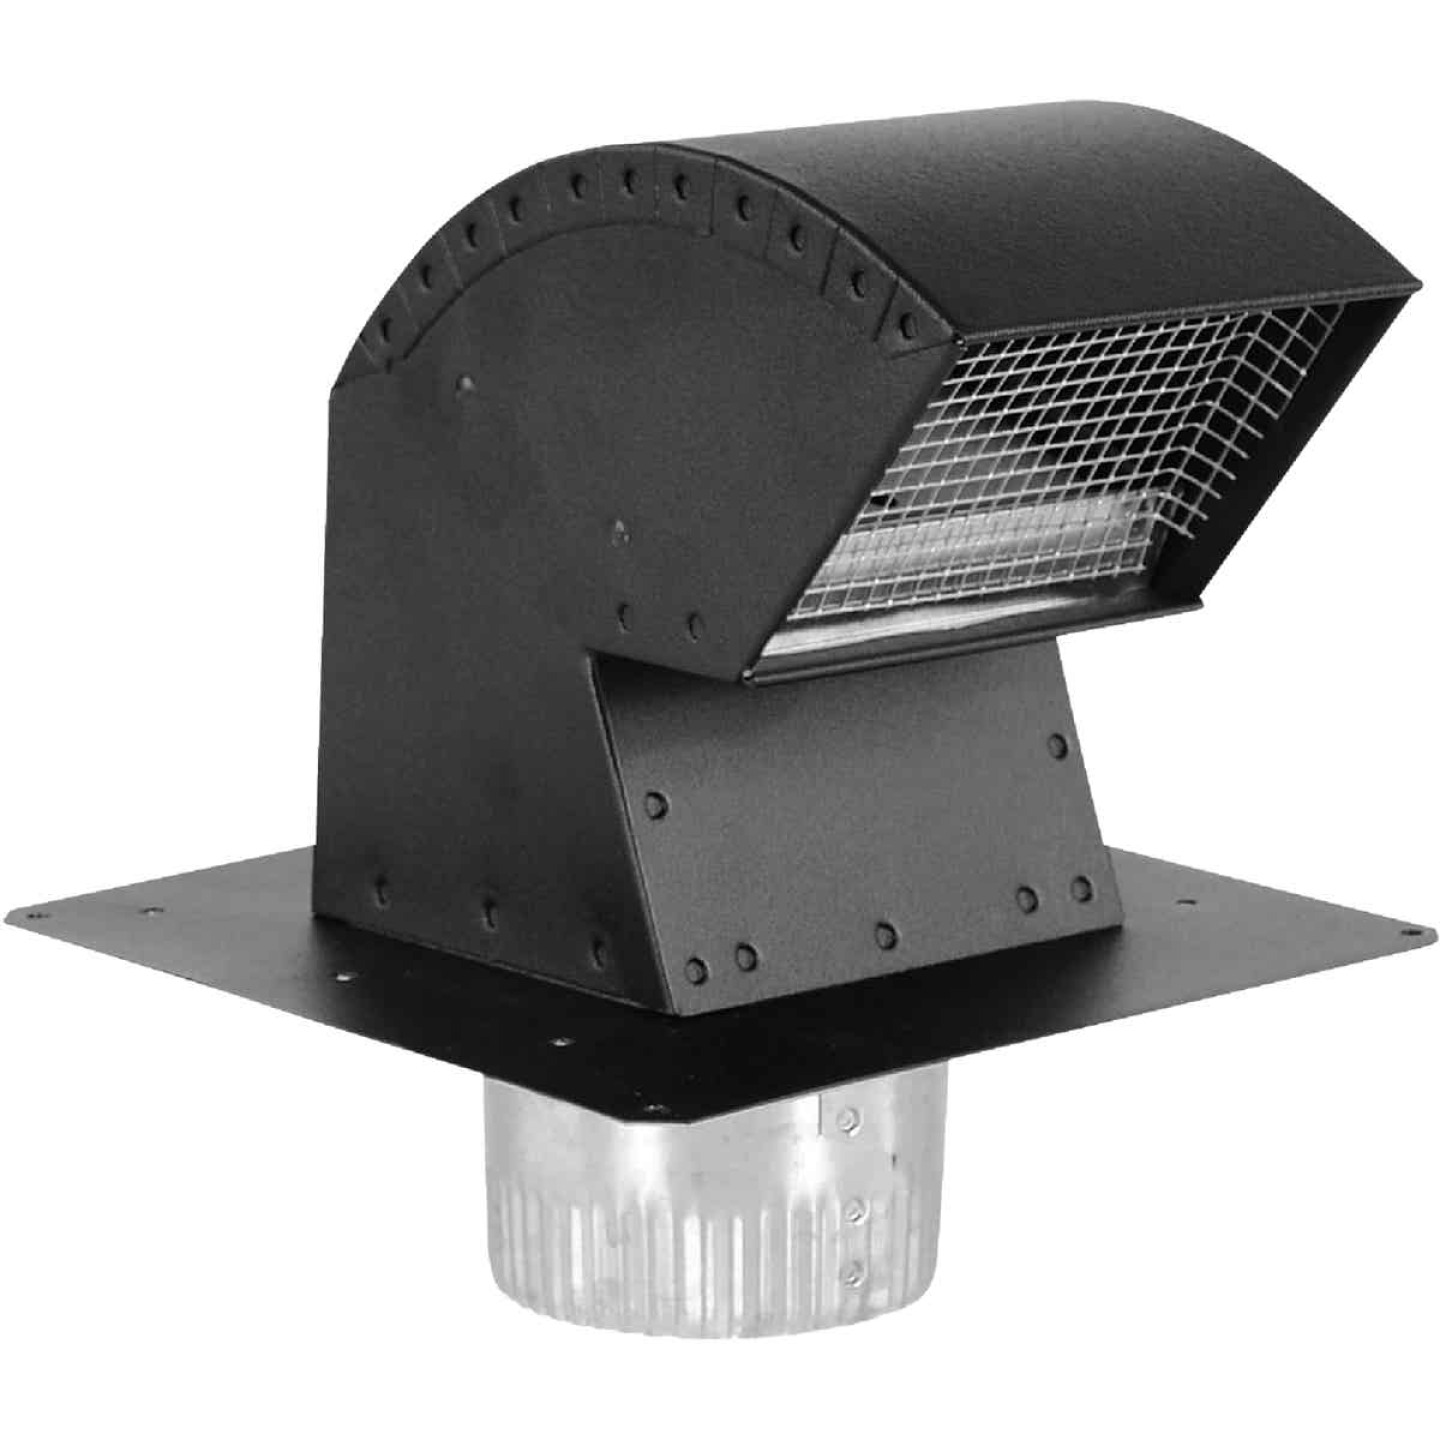 Imperial 6 In. Black Aluminum R-2 Premium Roof Vent Cap with Collar Image 1